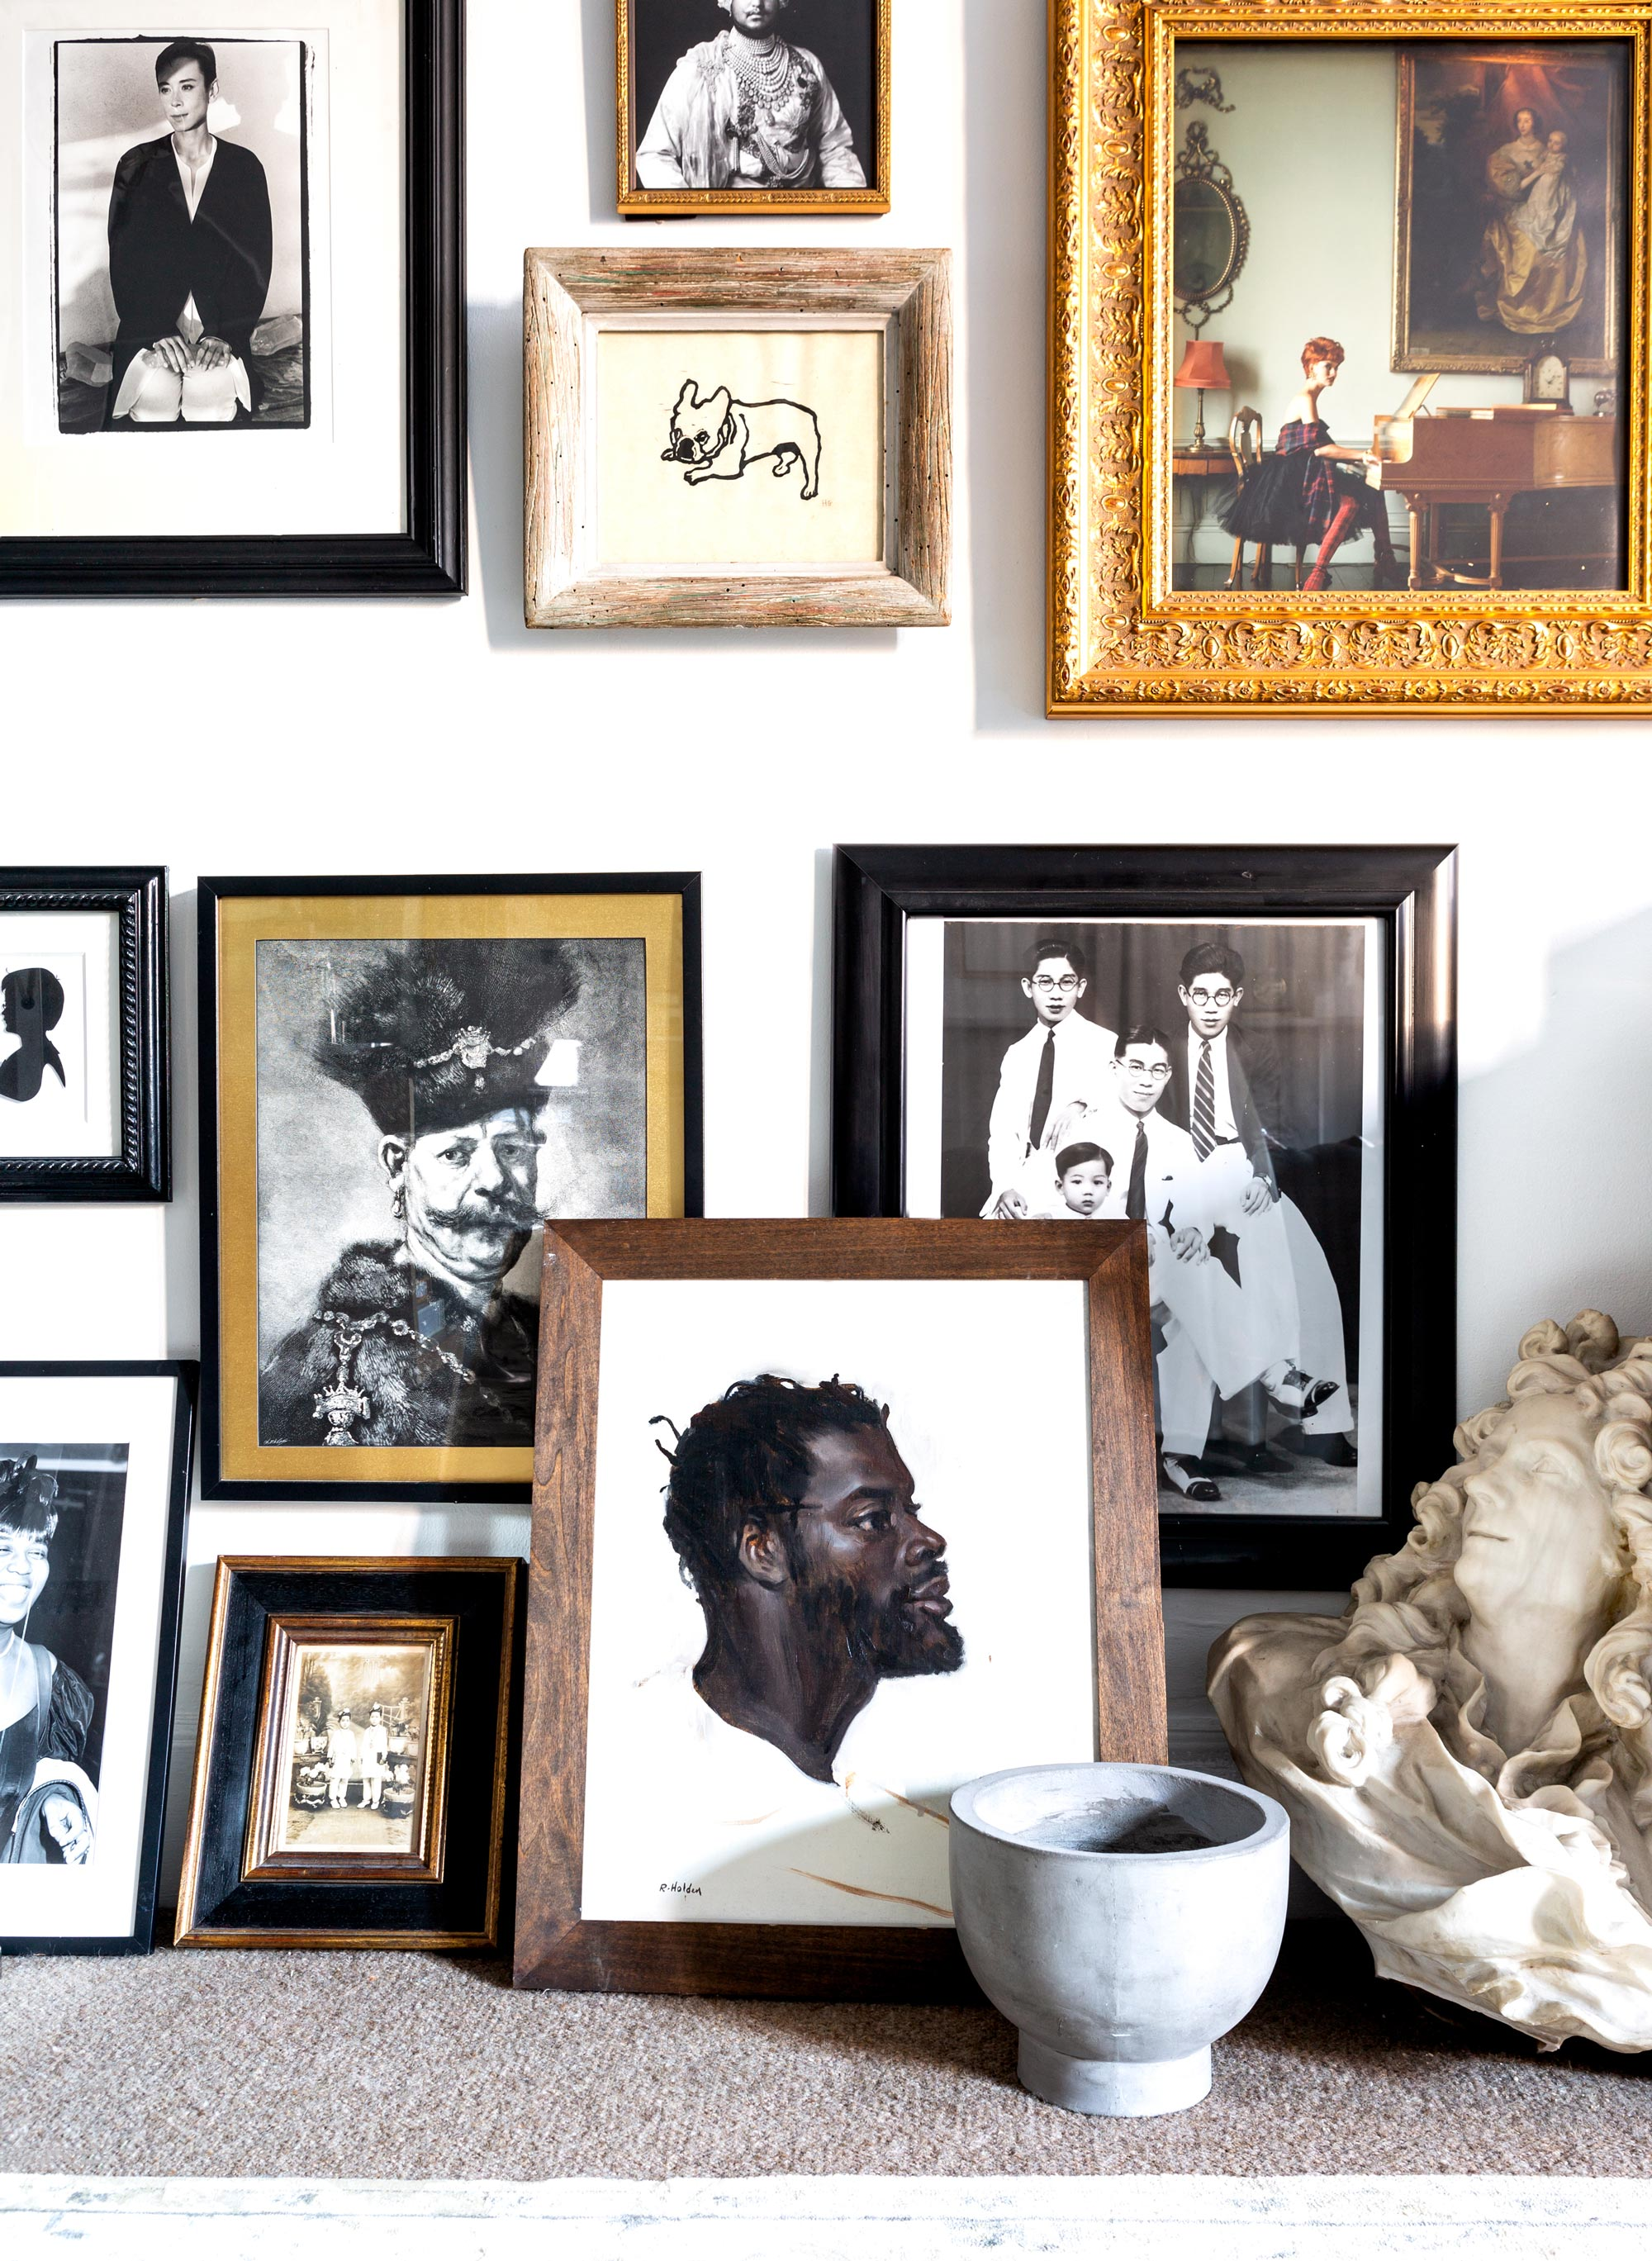 """Teo's collection of art and photography: """"I particularly love portraiture,"""" he says. """"When you look at a portrait, you learn so much about individual people, and cultures, and even just human emotion."""""""